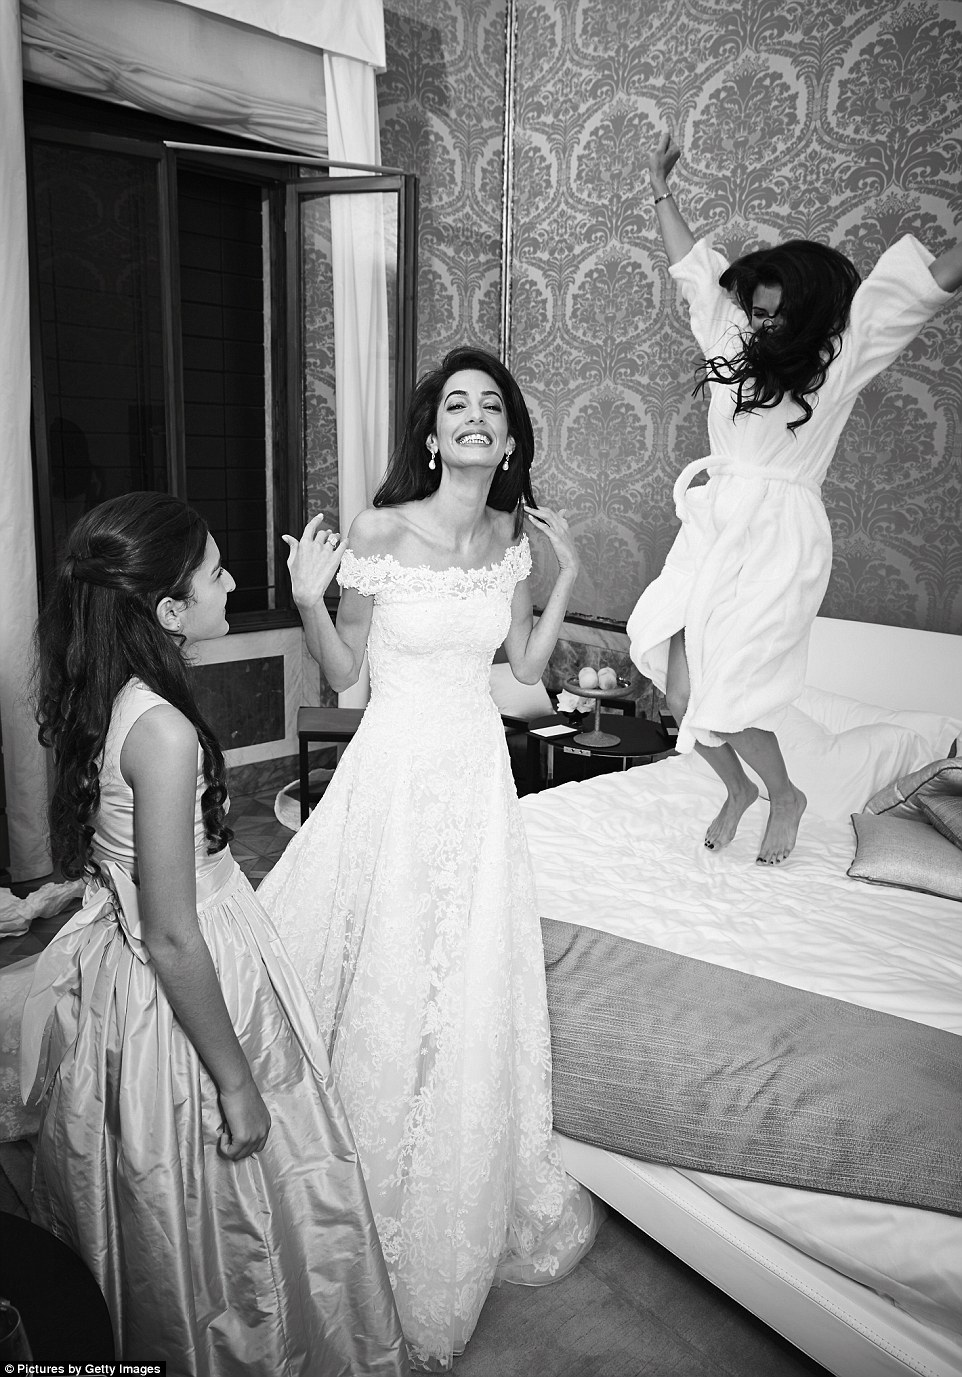 Amal Clooney wedding dress getting ready